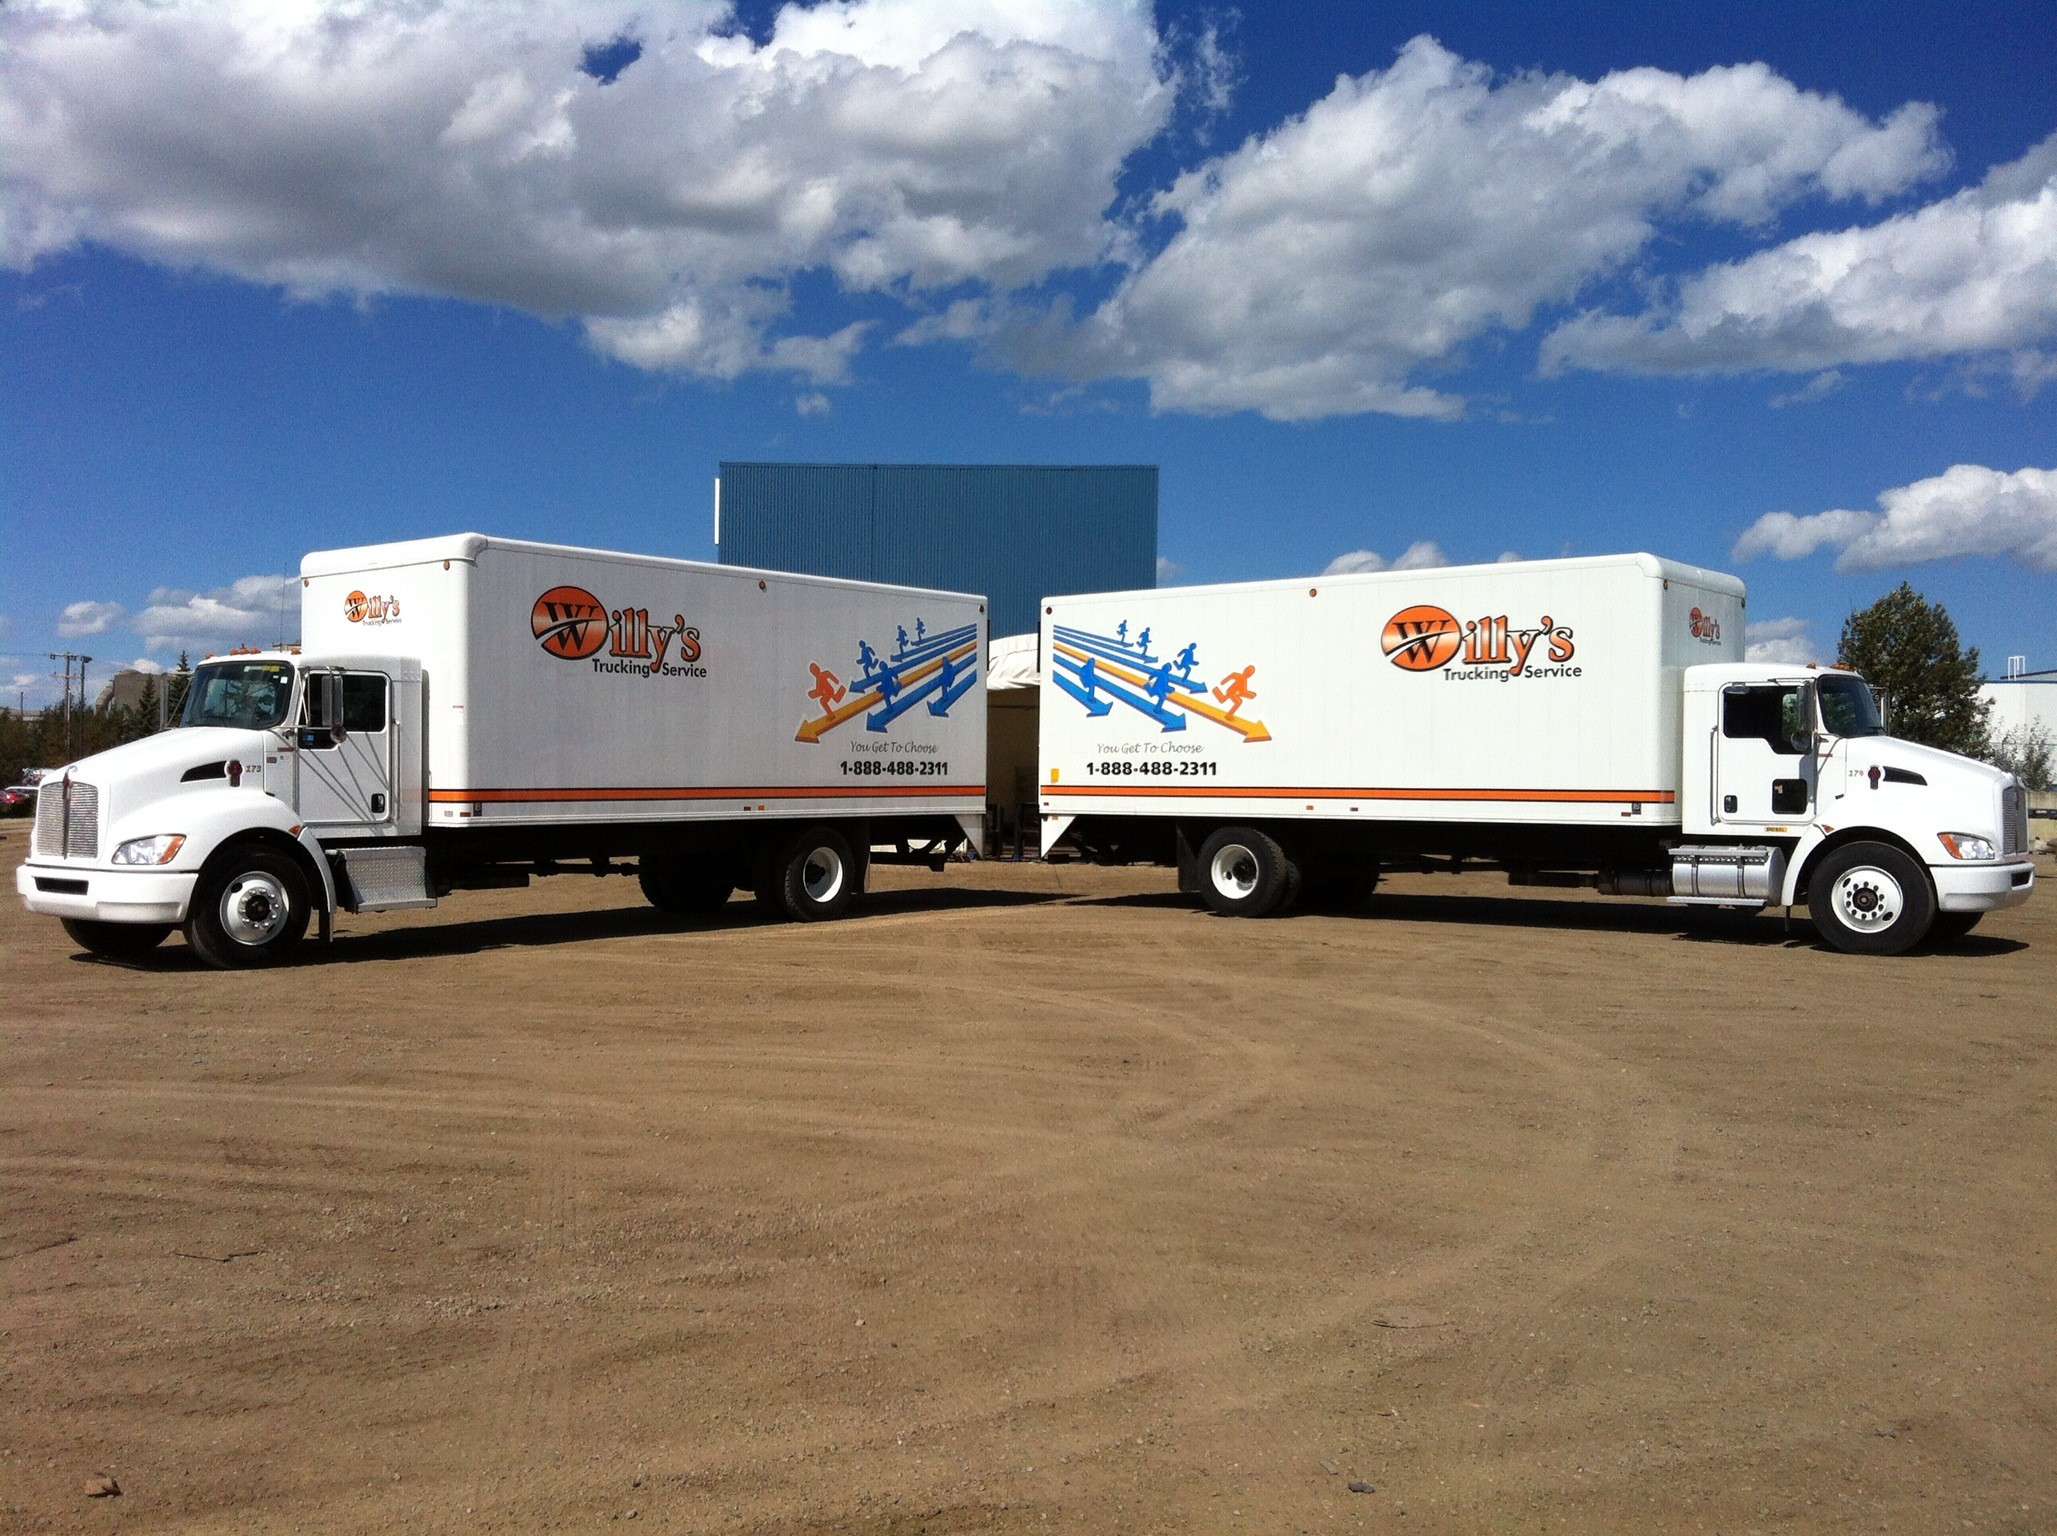 Willy's Trucking Service | LinkedIn